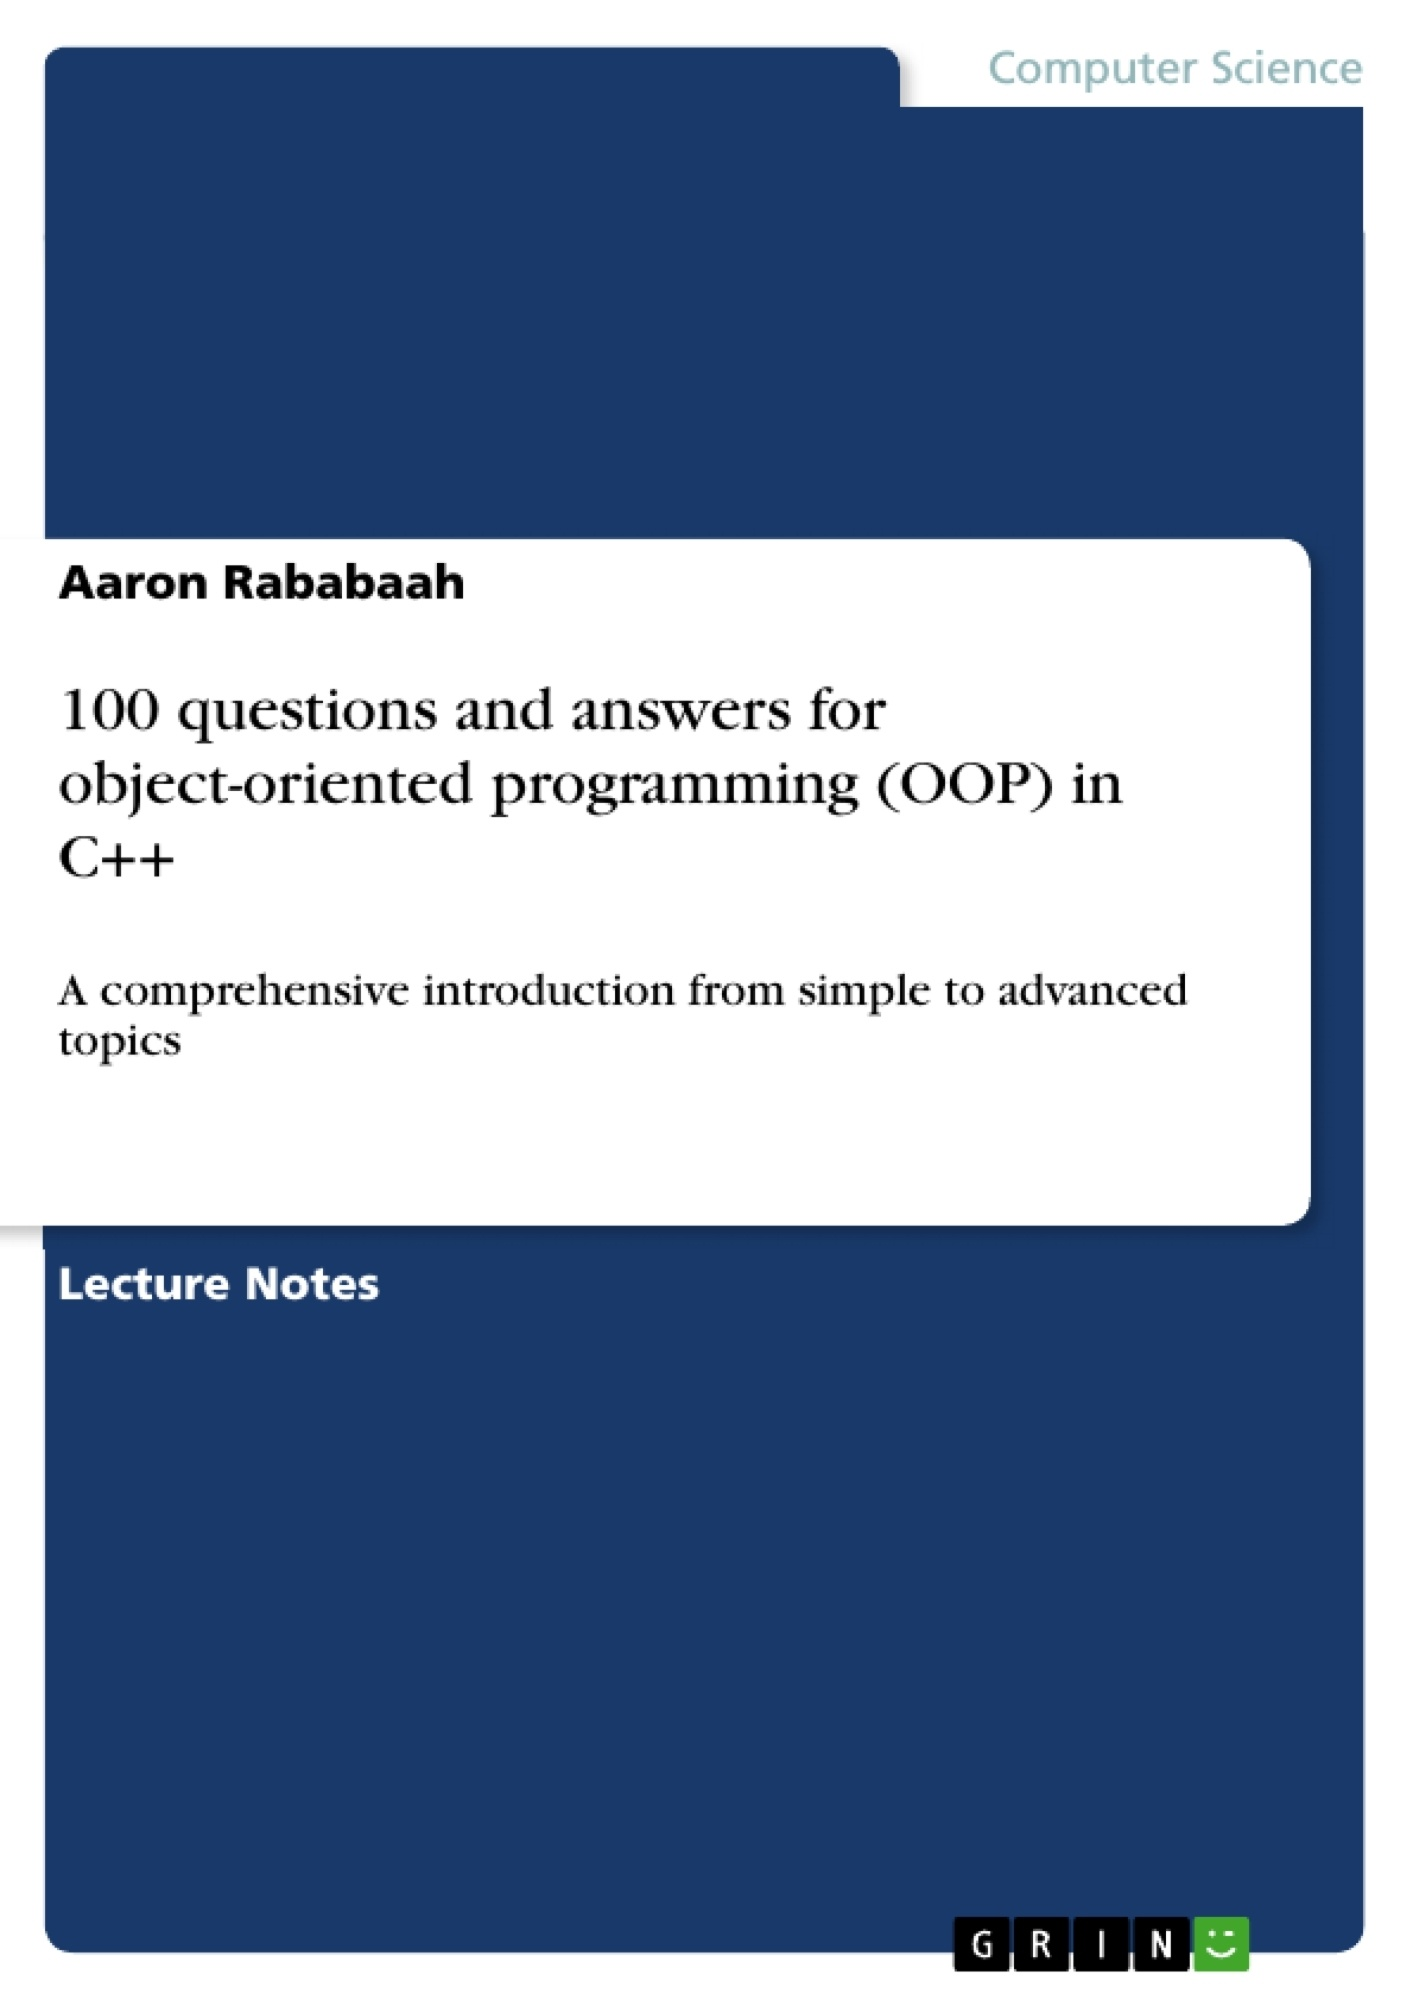 GRIN - 100 questions and answers for object-oriented programming (OOP) in  C++